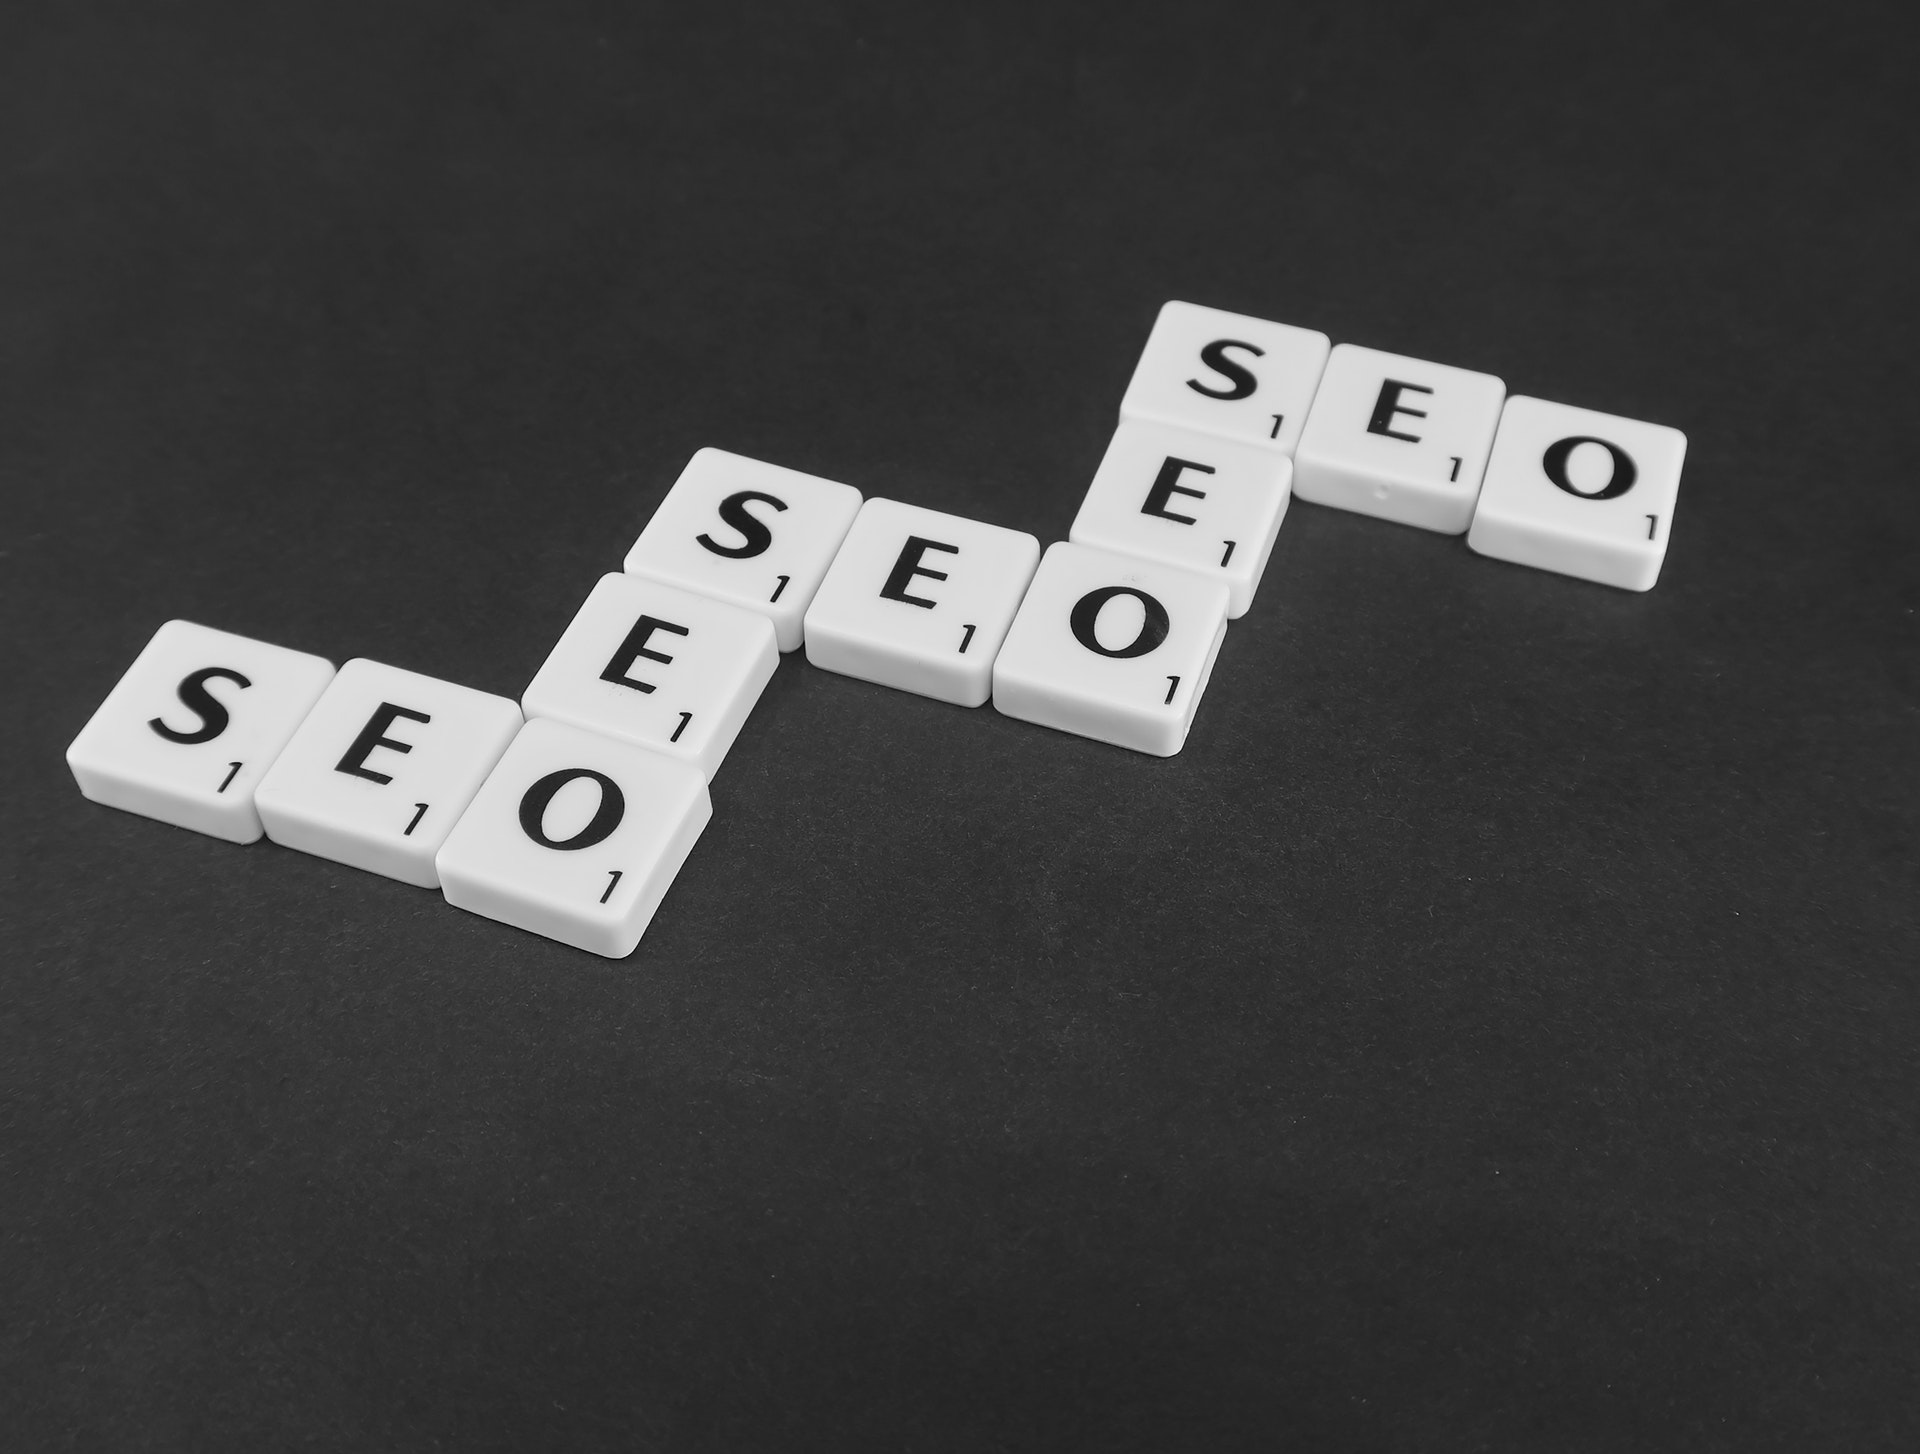 SEO techniques and tools for small businesses